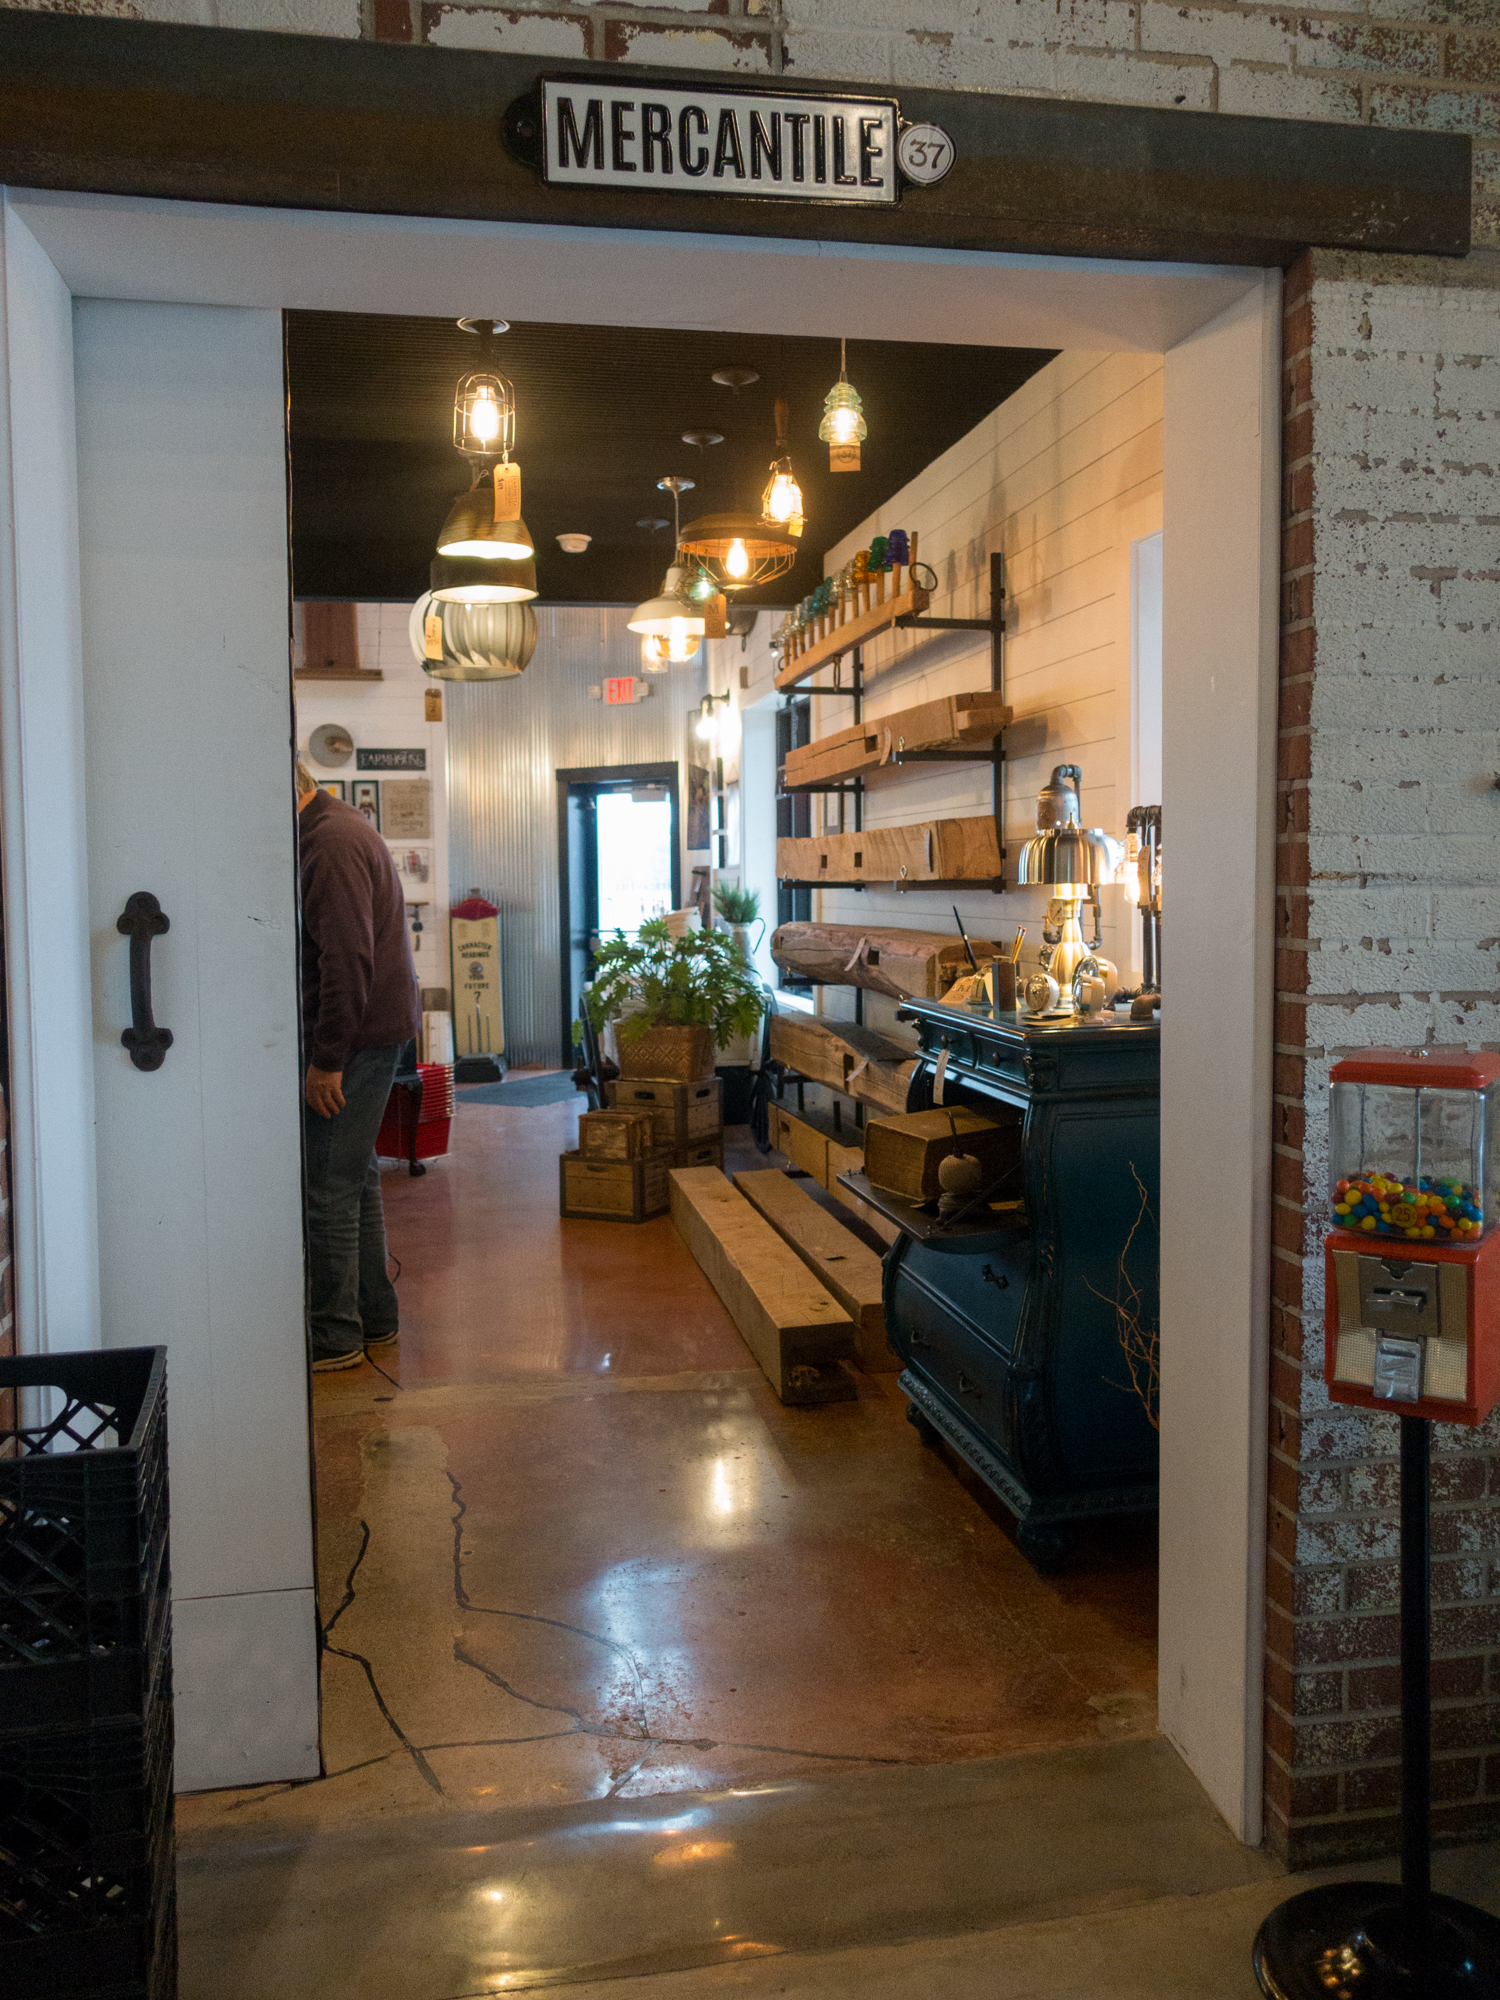 Looking for an unique store for holiday shopping? Be sure to check out Mercantile 37, located in Atlanta, Indiana. The Mercantile 37 studio and showroom features quality, custom home goods created by a collective of local makers.